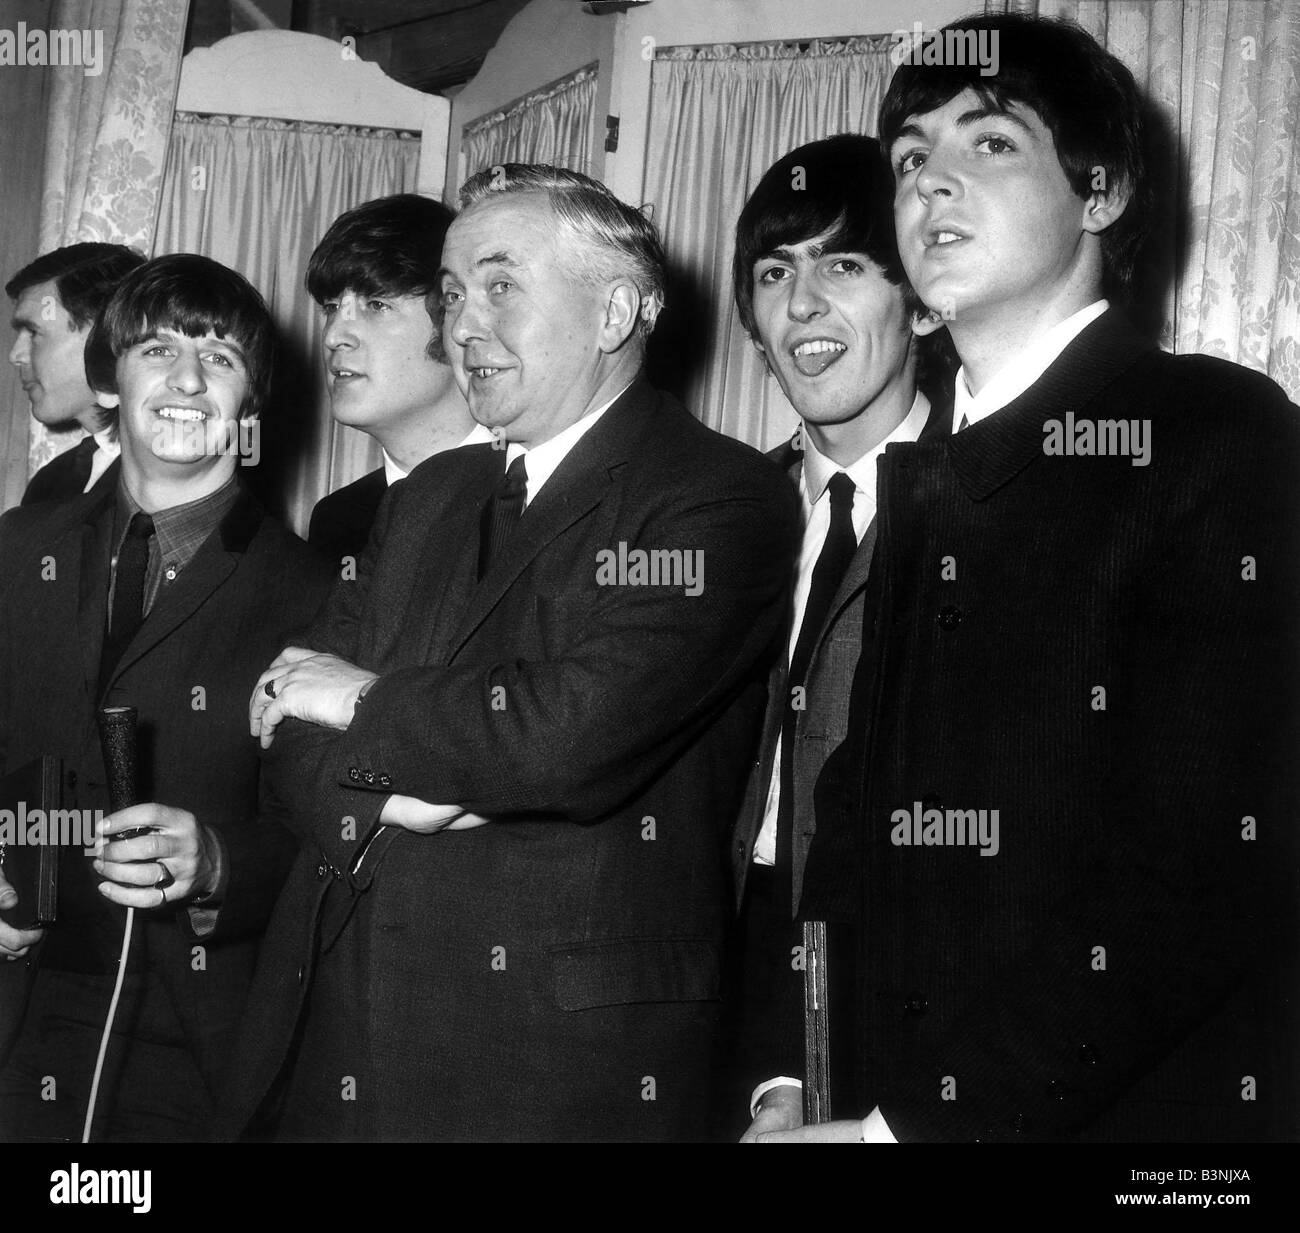 prime minister harold wilson with the beatles 1964 stock